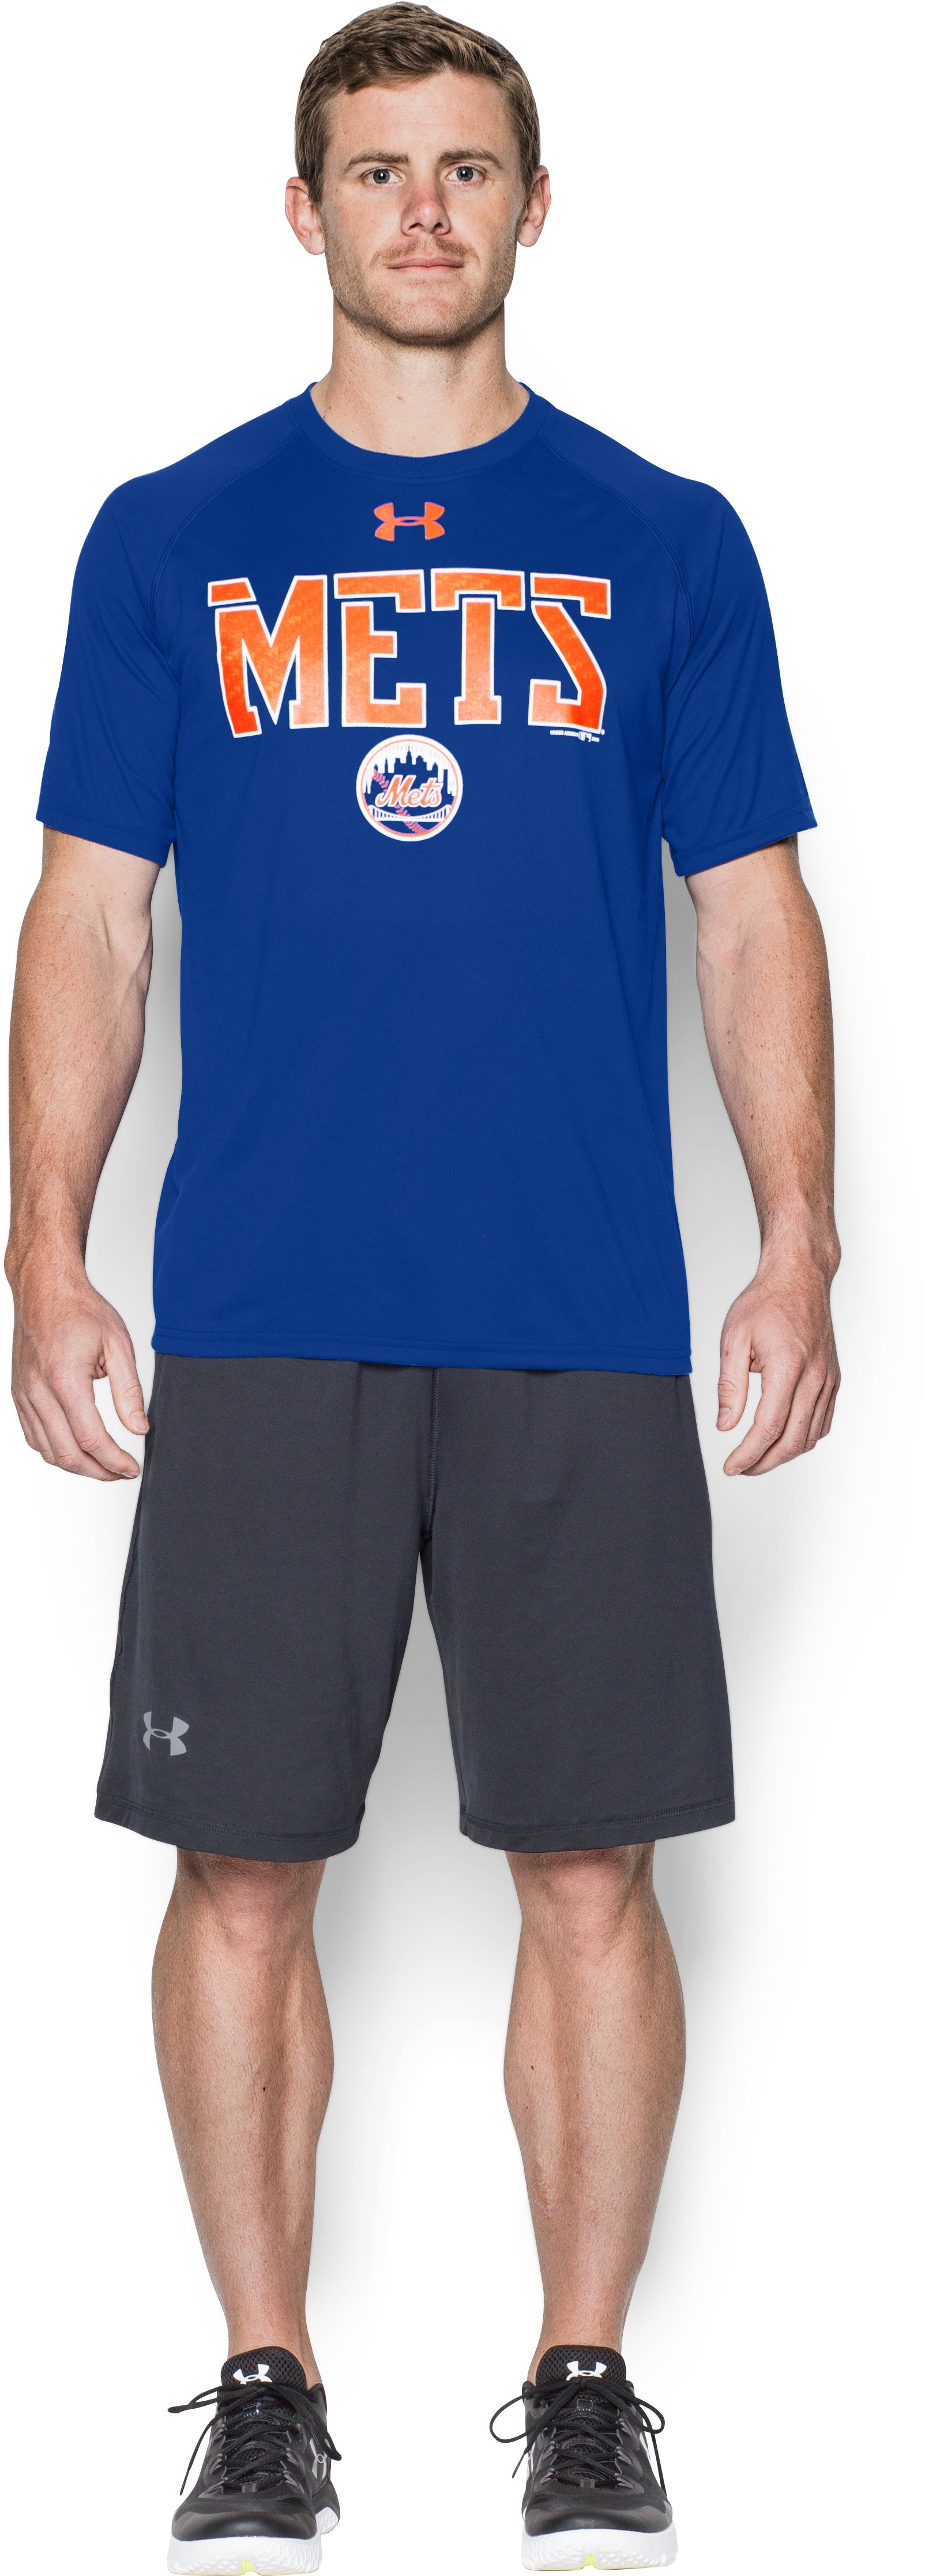 Men's New York Mets Team Tech™ T-Shirt, Royal, zoomed image